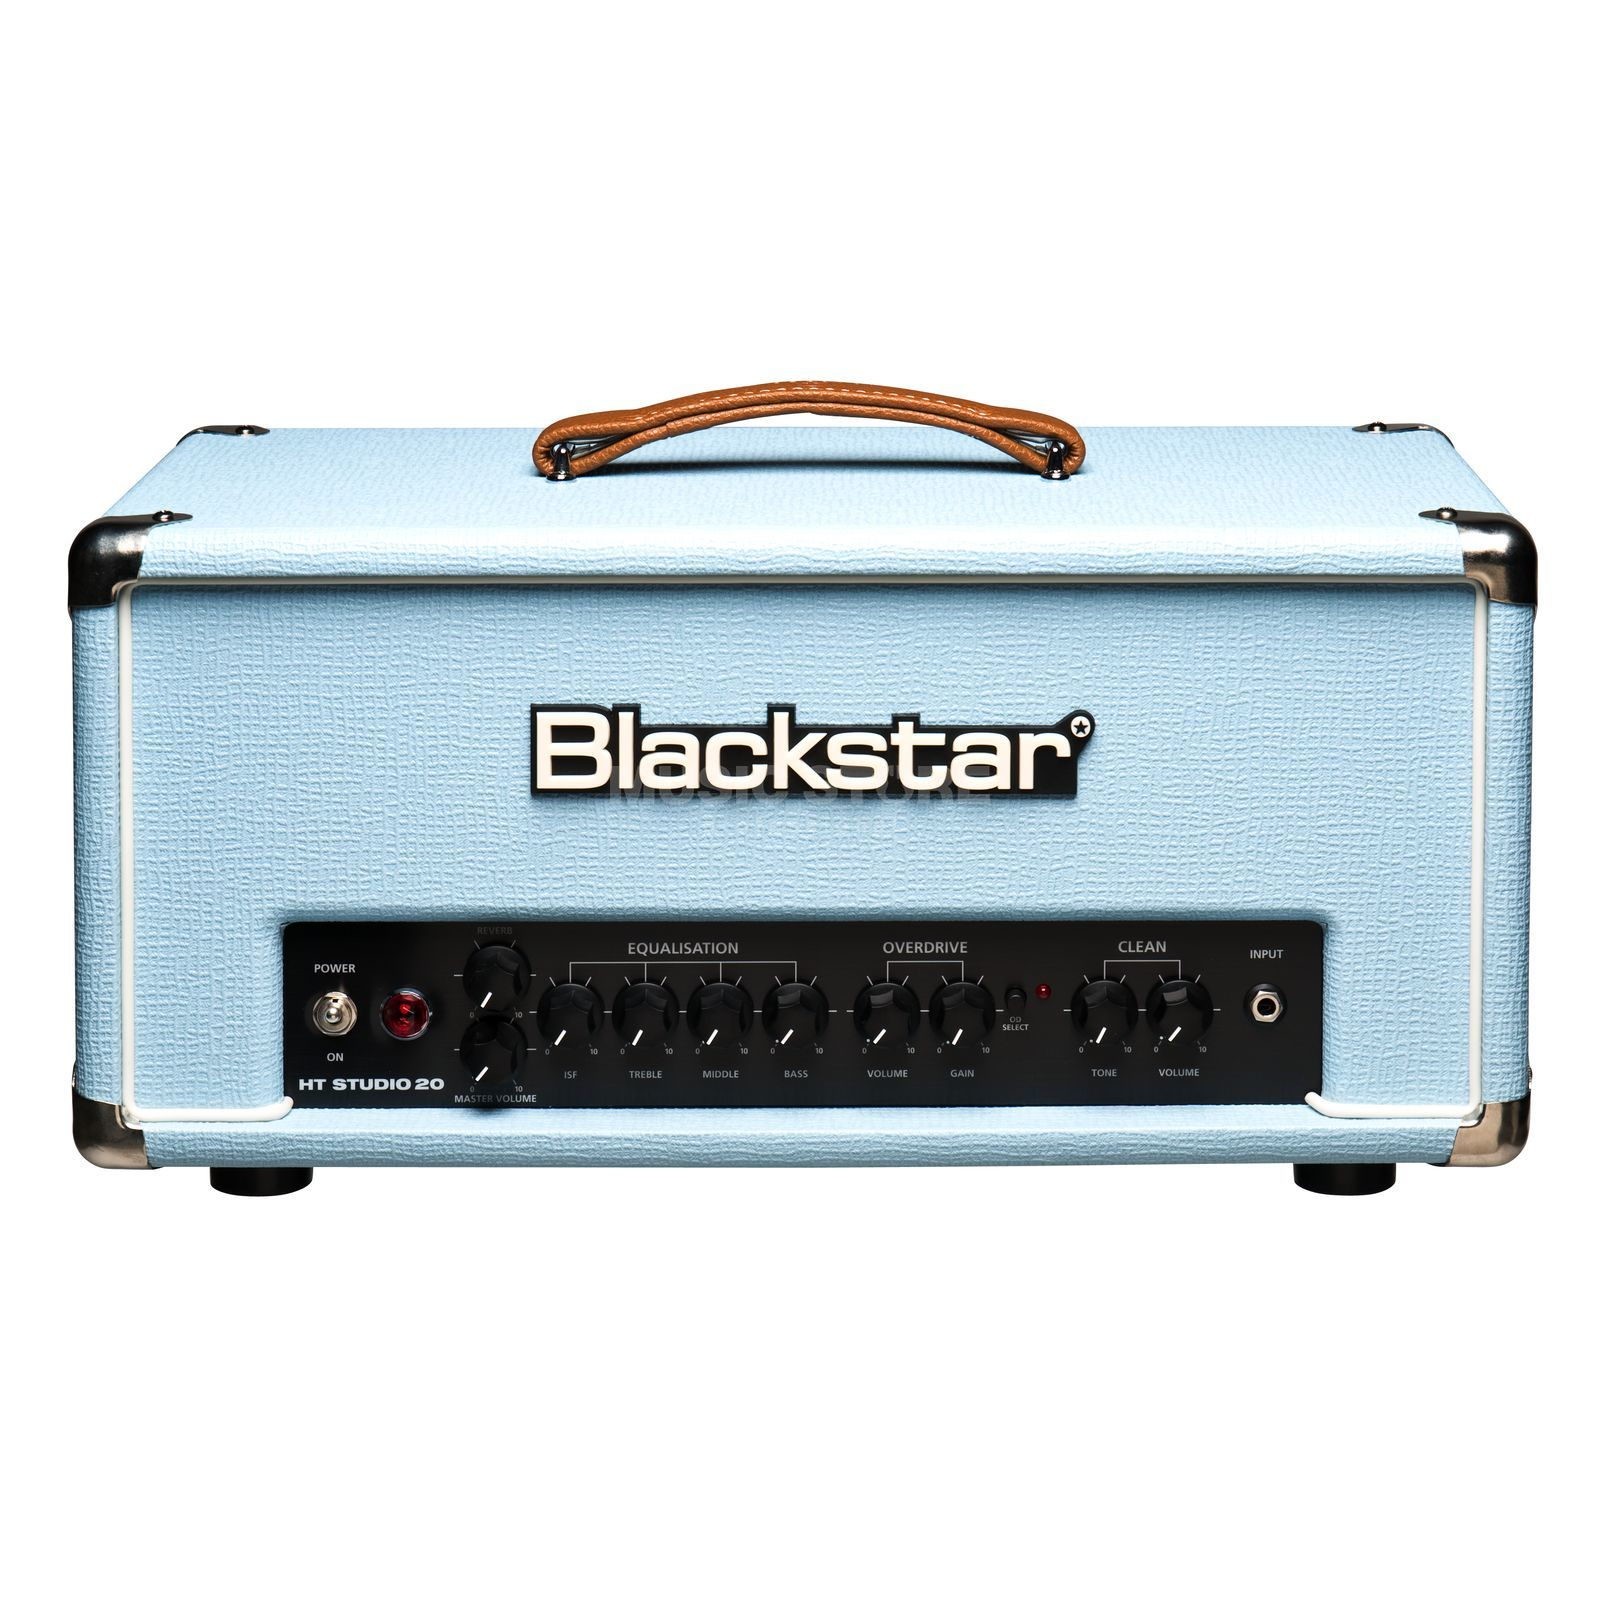 Blackstar HT Studio 20H Head Blue Limited Edition Product Image